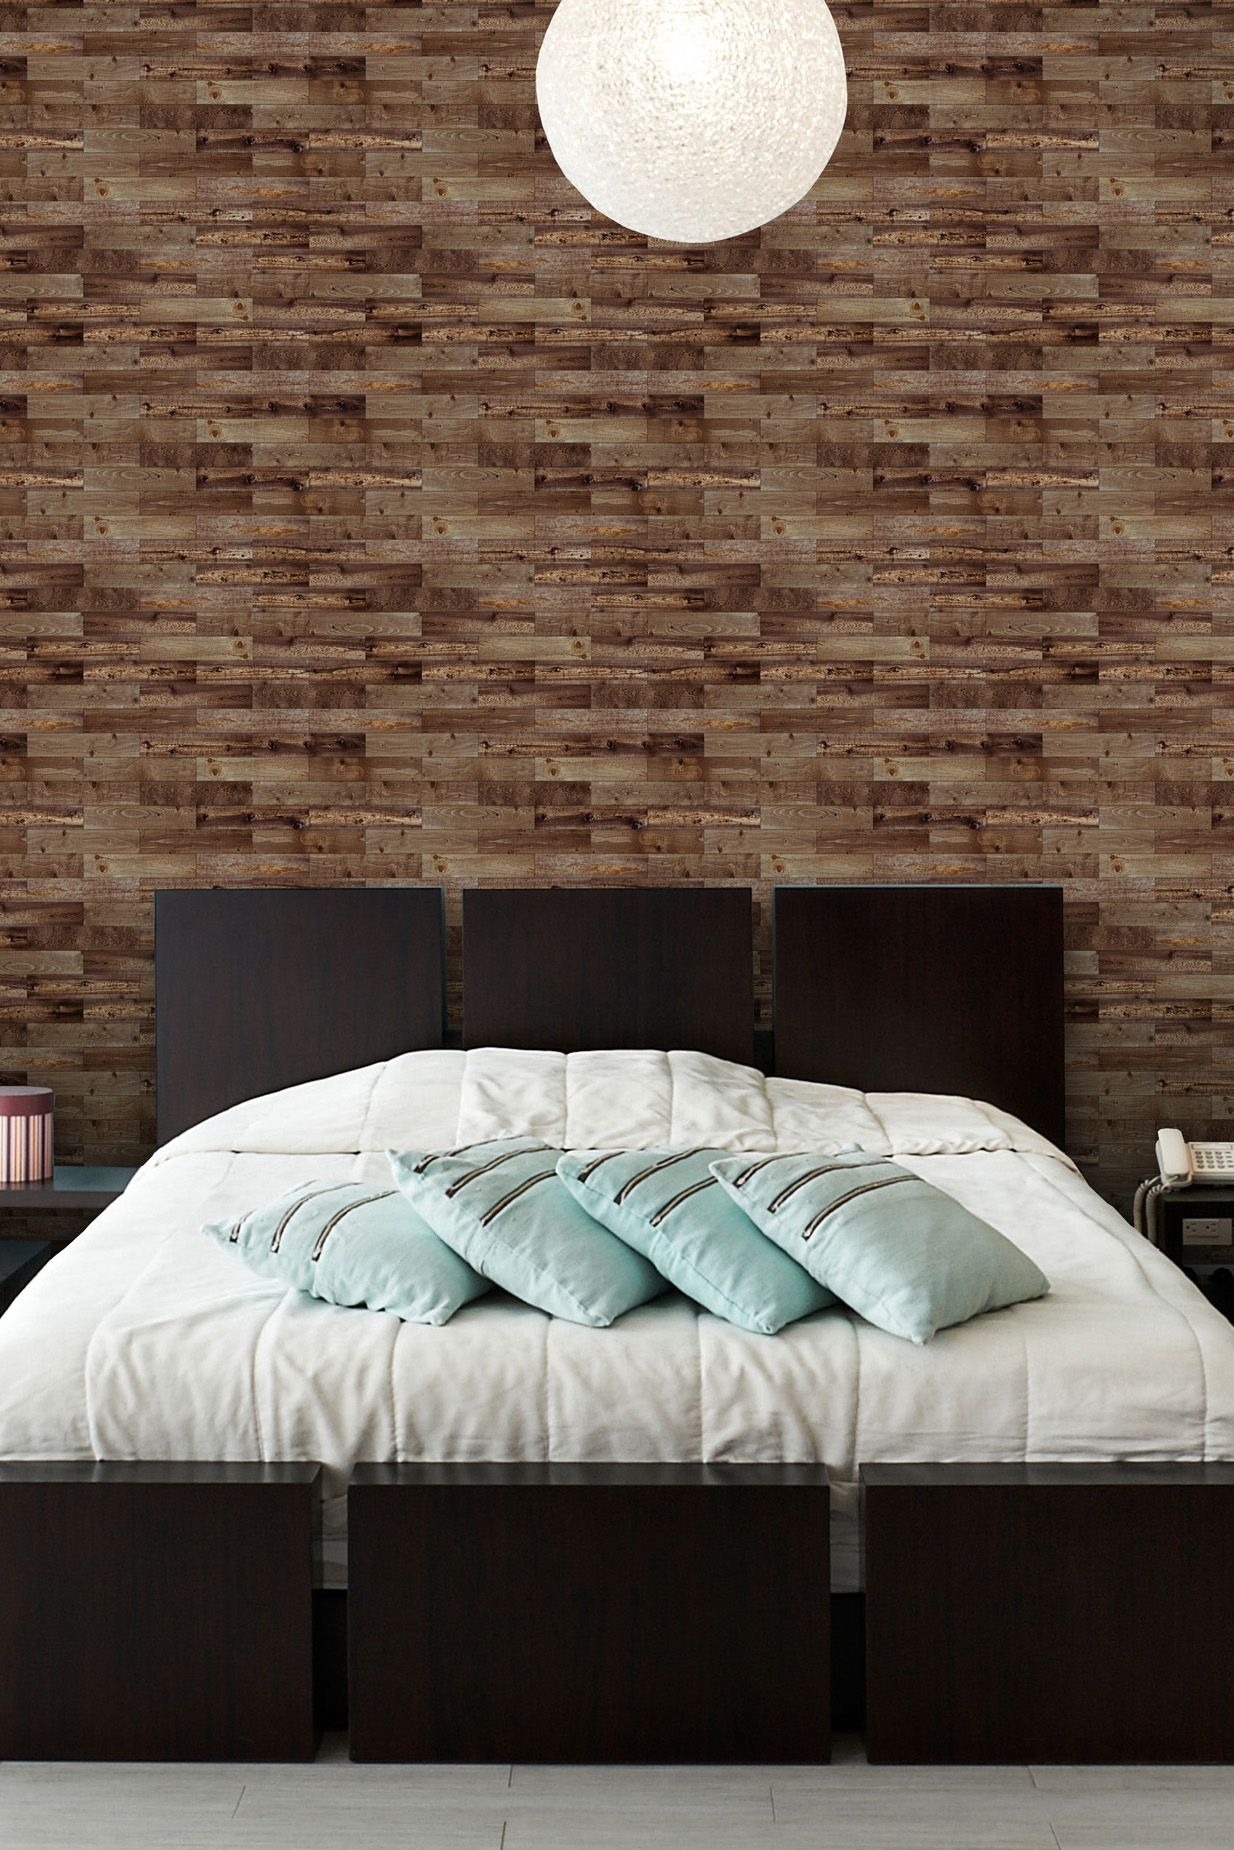 Bedroom Awesome Ideias Relax And Enjoy These Walls By Me Wallpapers